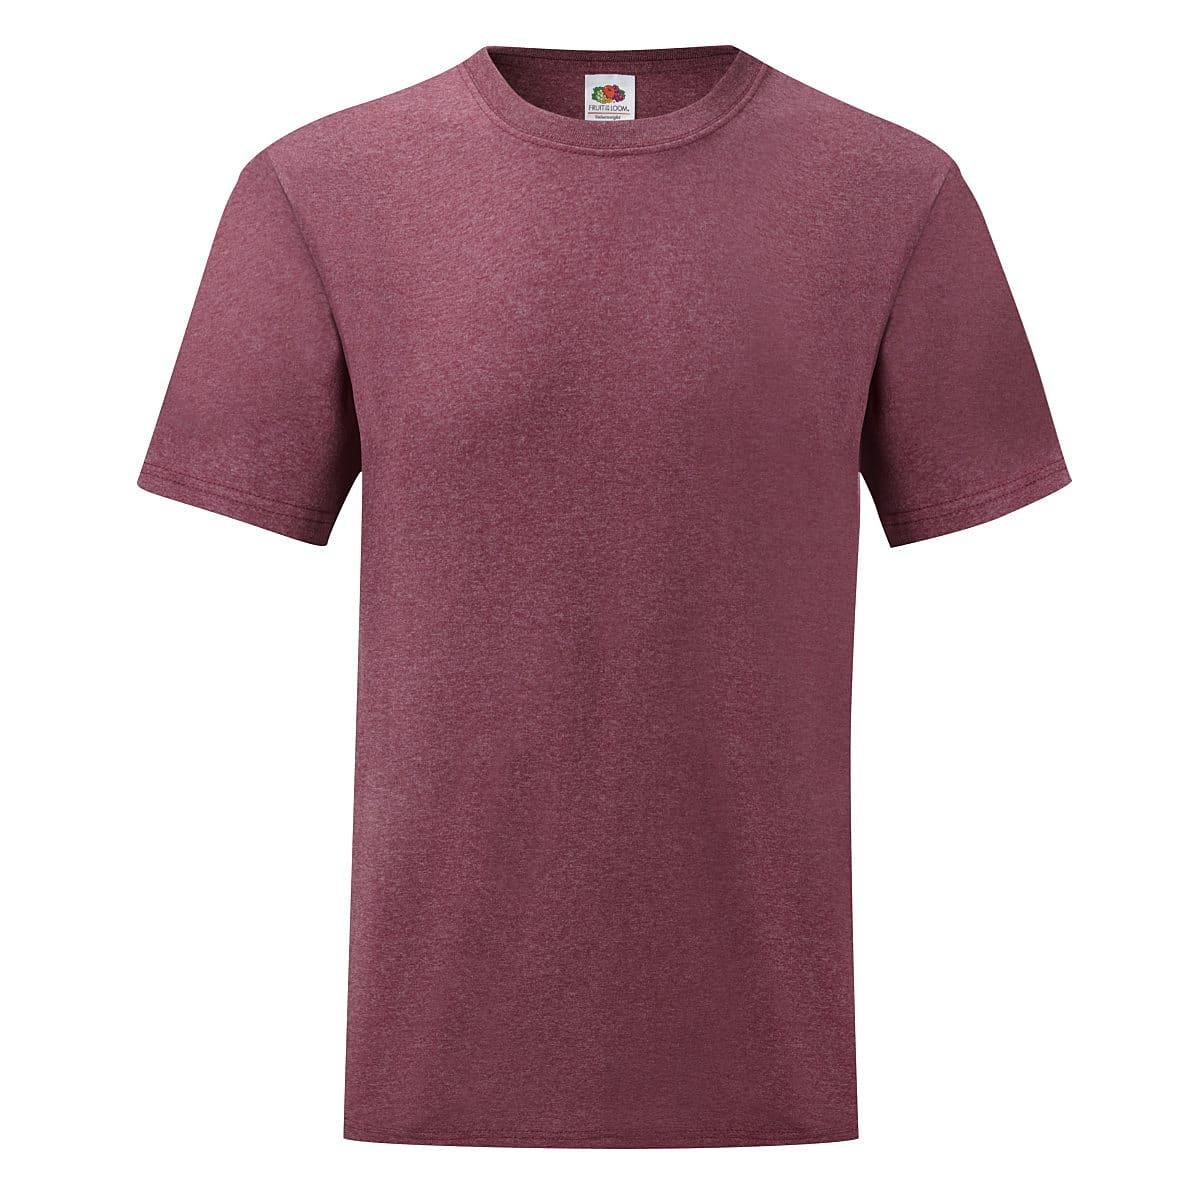 Fruit Of The Loom Valueweight T-Shirt in Heather Burgundy (Product Code: 61036)